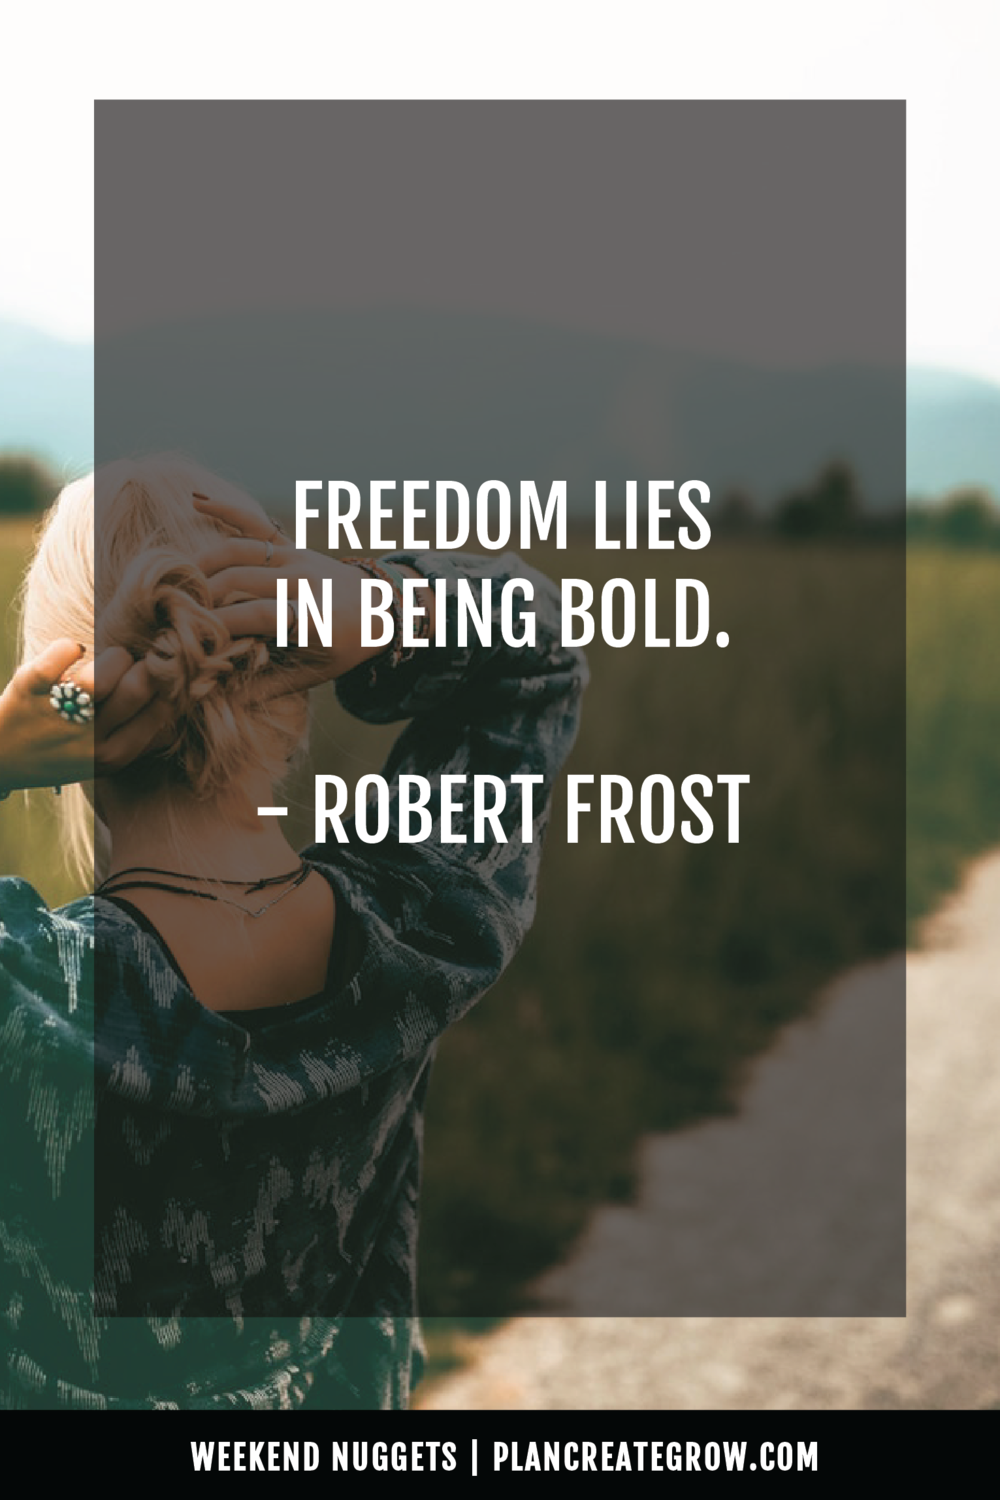 """Freedom lies in being bold."" - Robert Frost  This image forms part of a series called Weekend Nuggets - a collection of quotes and ideas curated to delight and inspire - shared each weekend. For more, visit plancreategrow.com/weekend-nuggets."